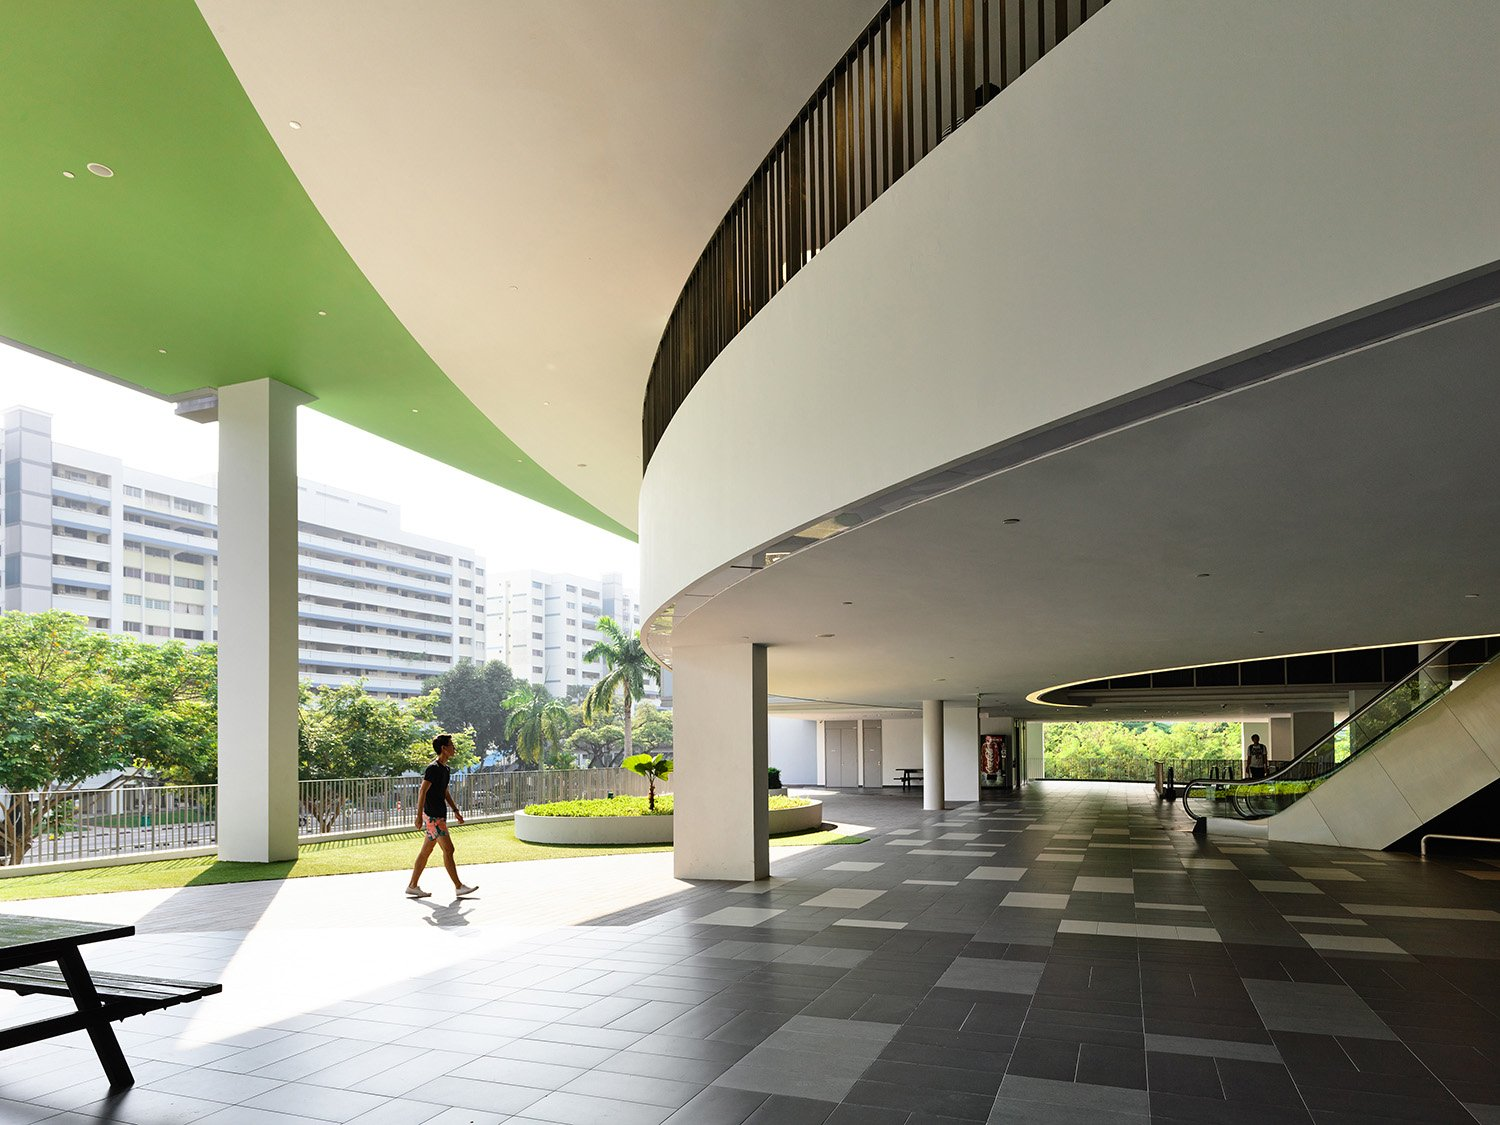 Greenery has been introduced into the large atrium space for relief